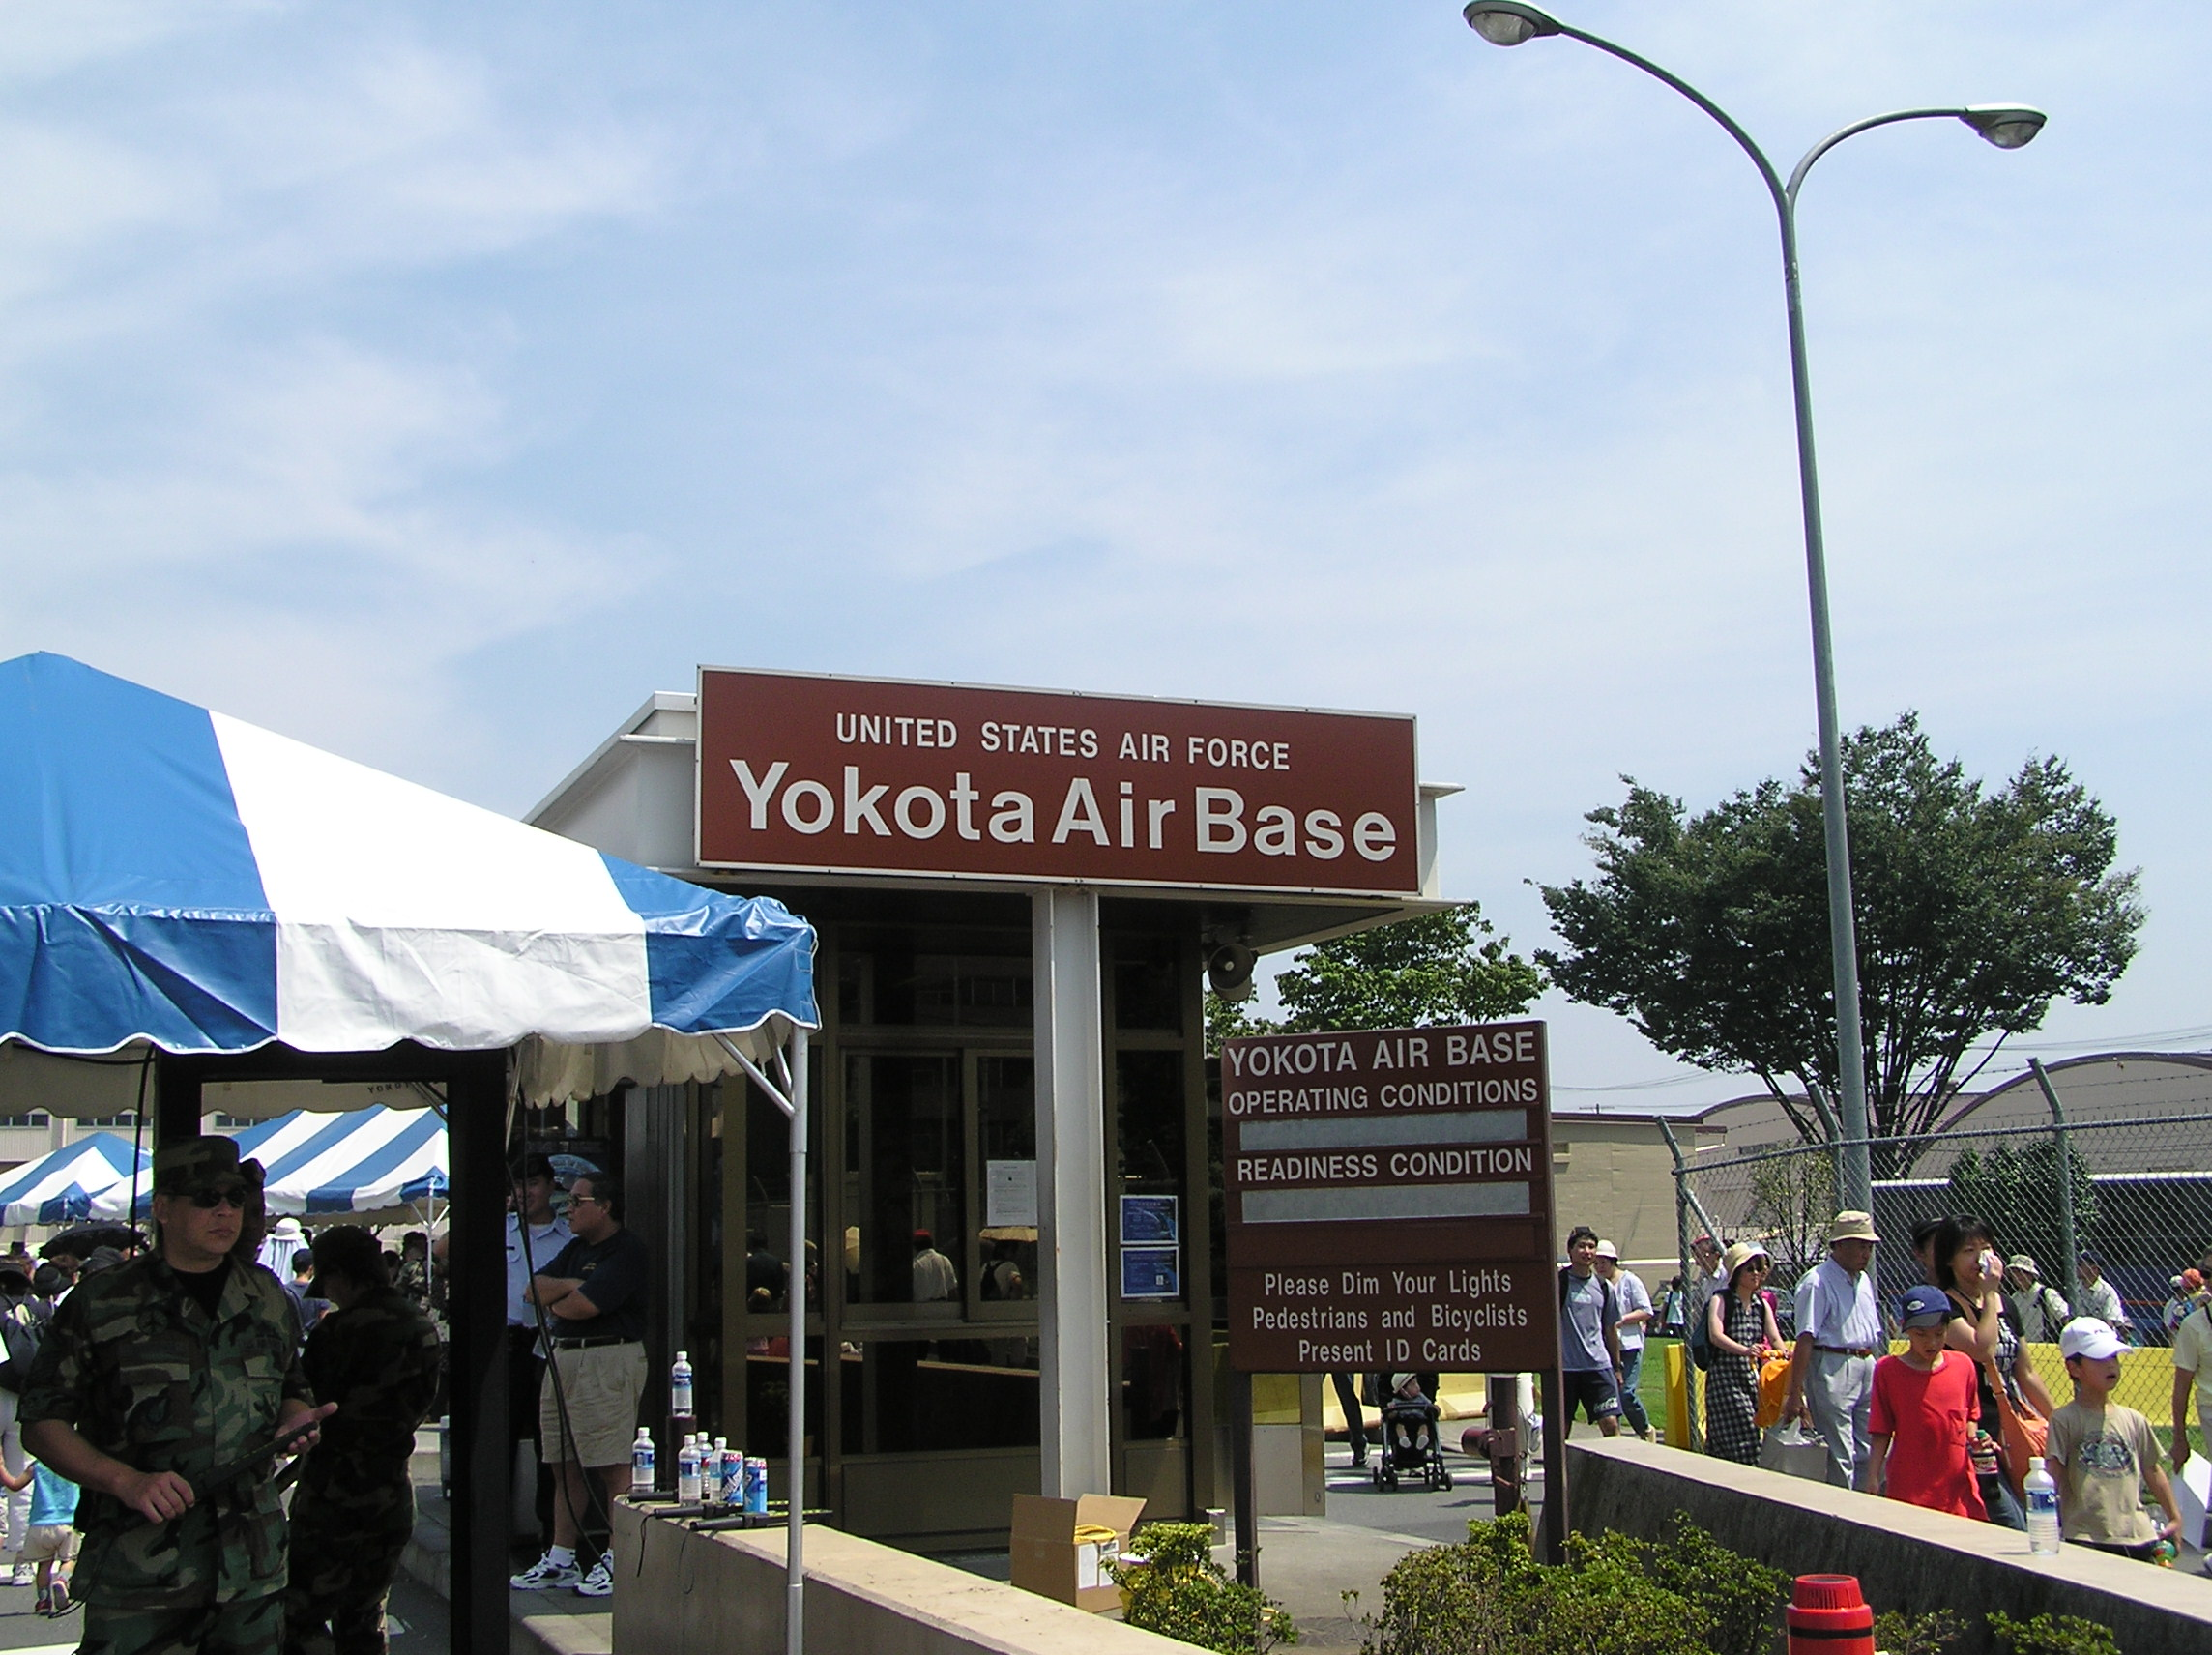 File:US Yokota Air Base 1 Tokyo Japan.jpg - Wikimedia Commons